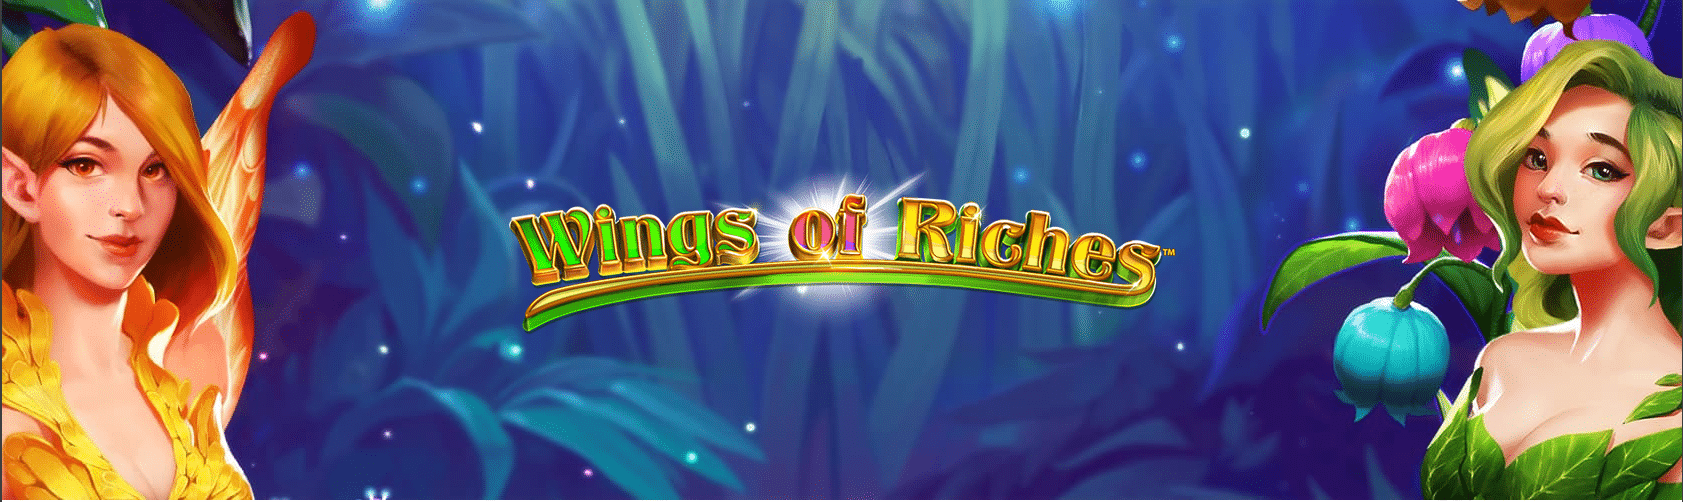 Wings of Riches slot logo